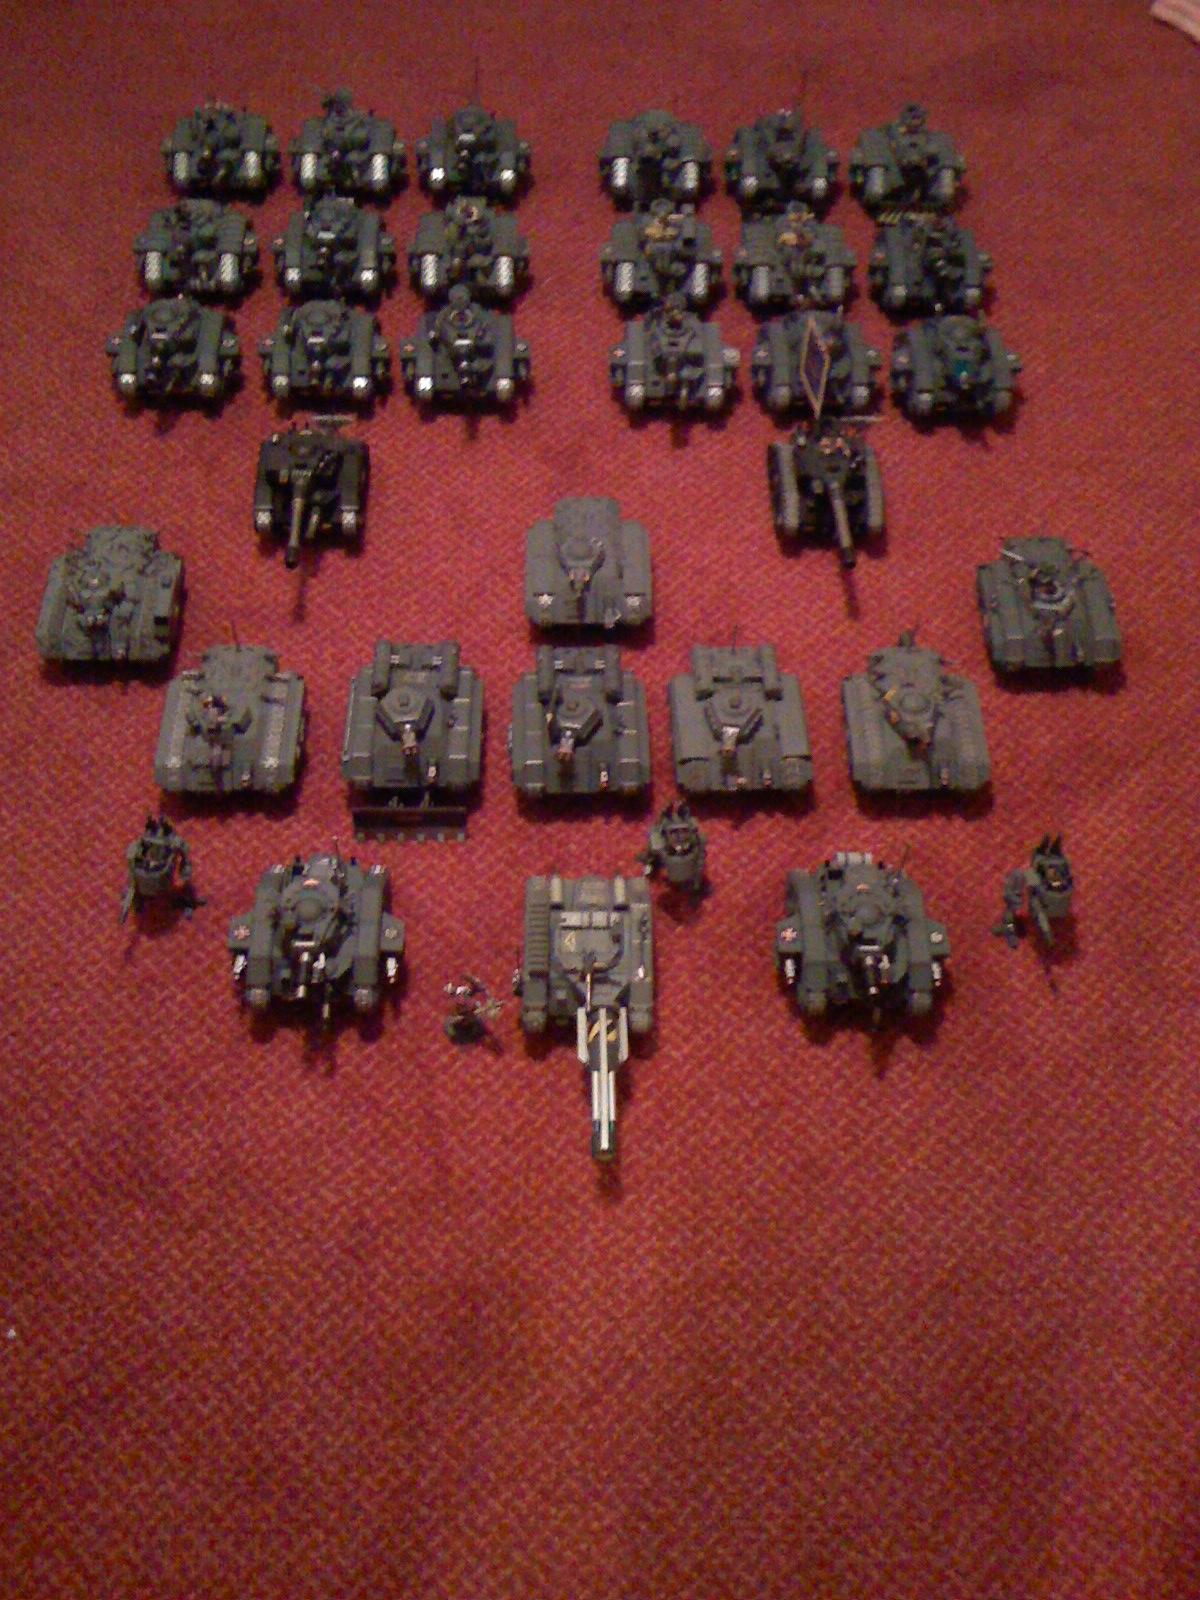 Armored Company, Army, Imperial Guard, Warhammer 40,000